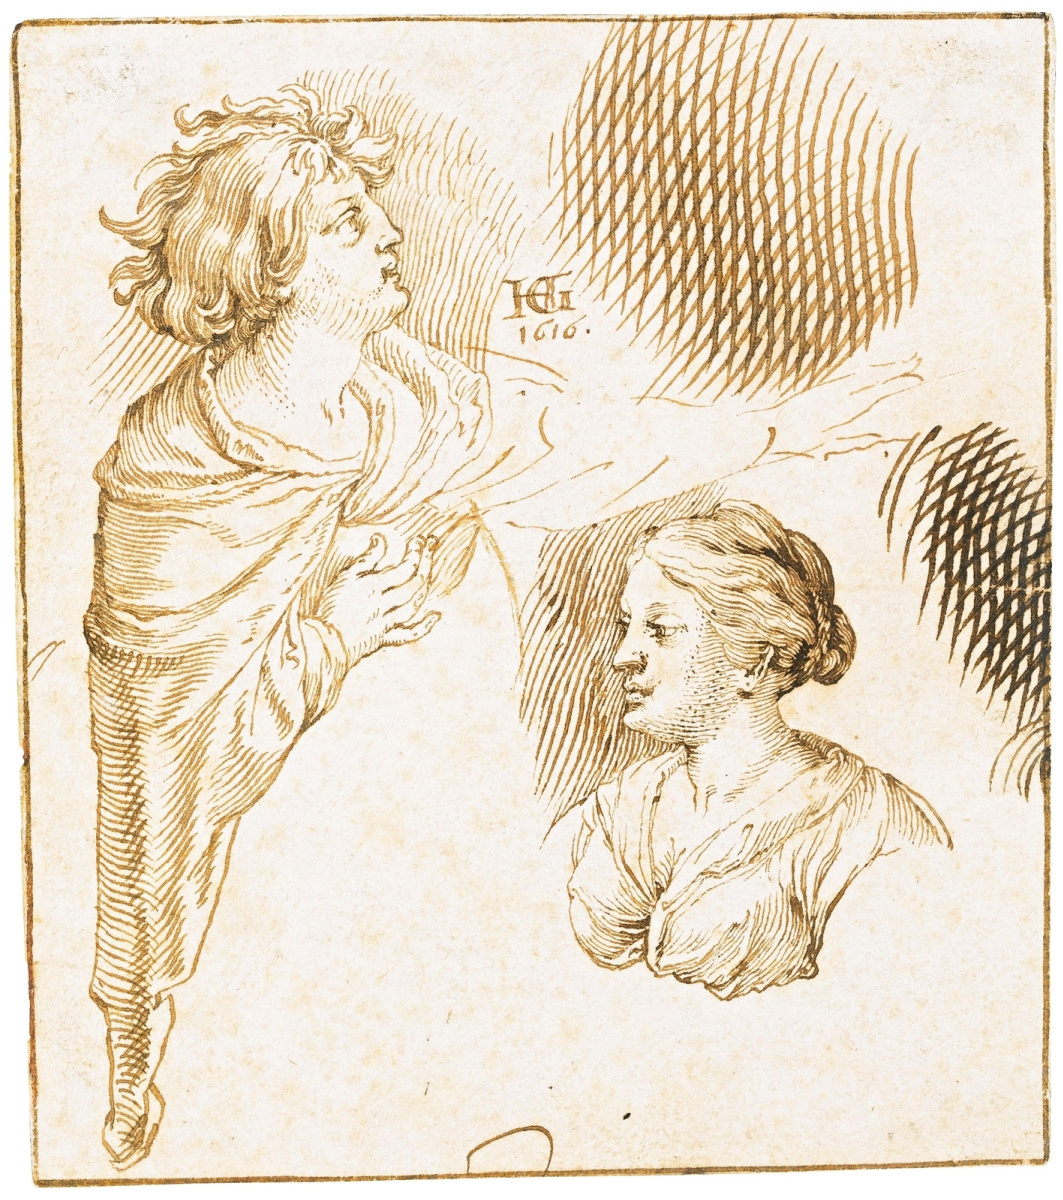 Hendrik Goltzius. Sketch with two figures. 1616